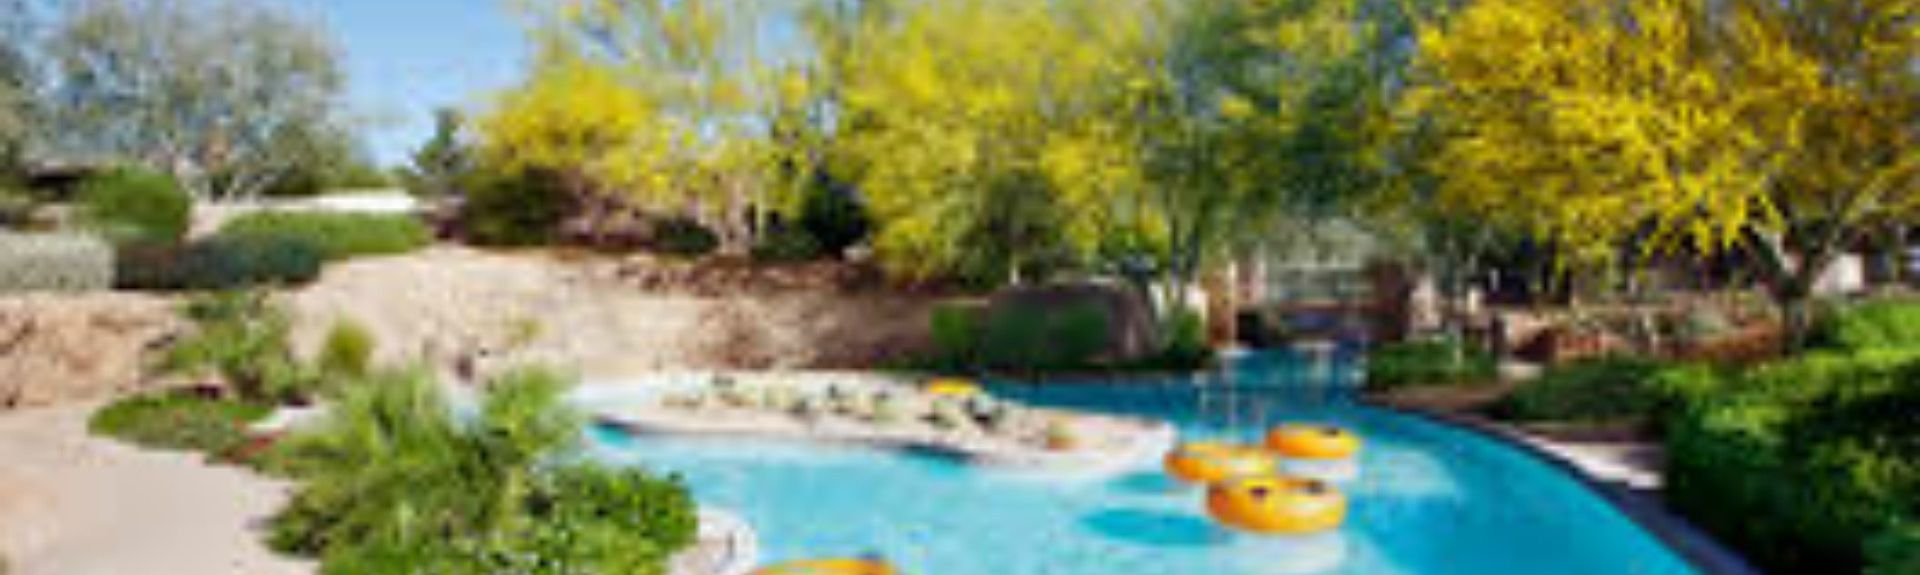 The Westin Kierland Villas, Scottsdale Vacation Rentals ...